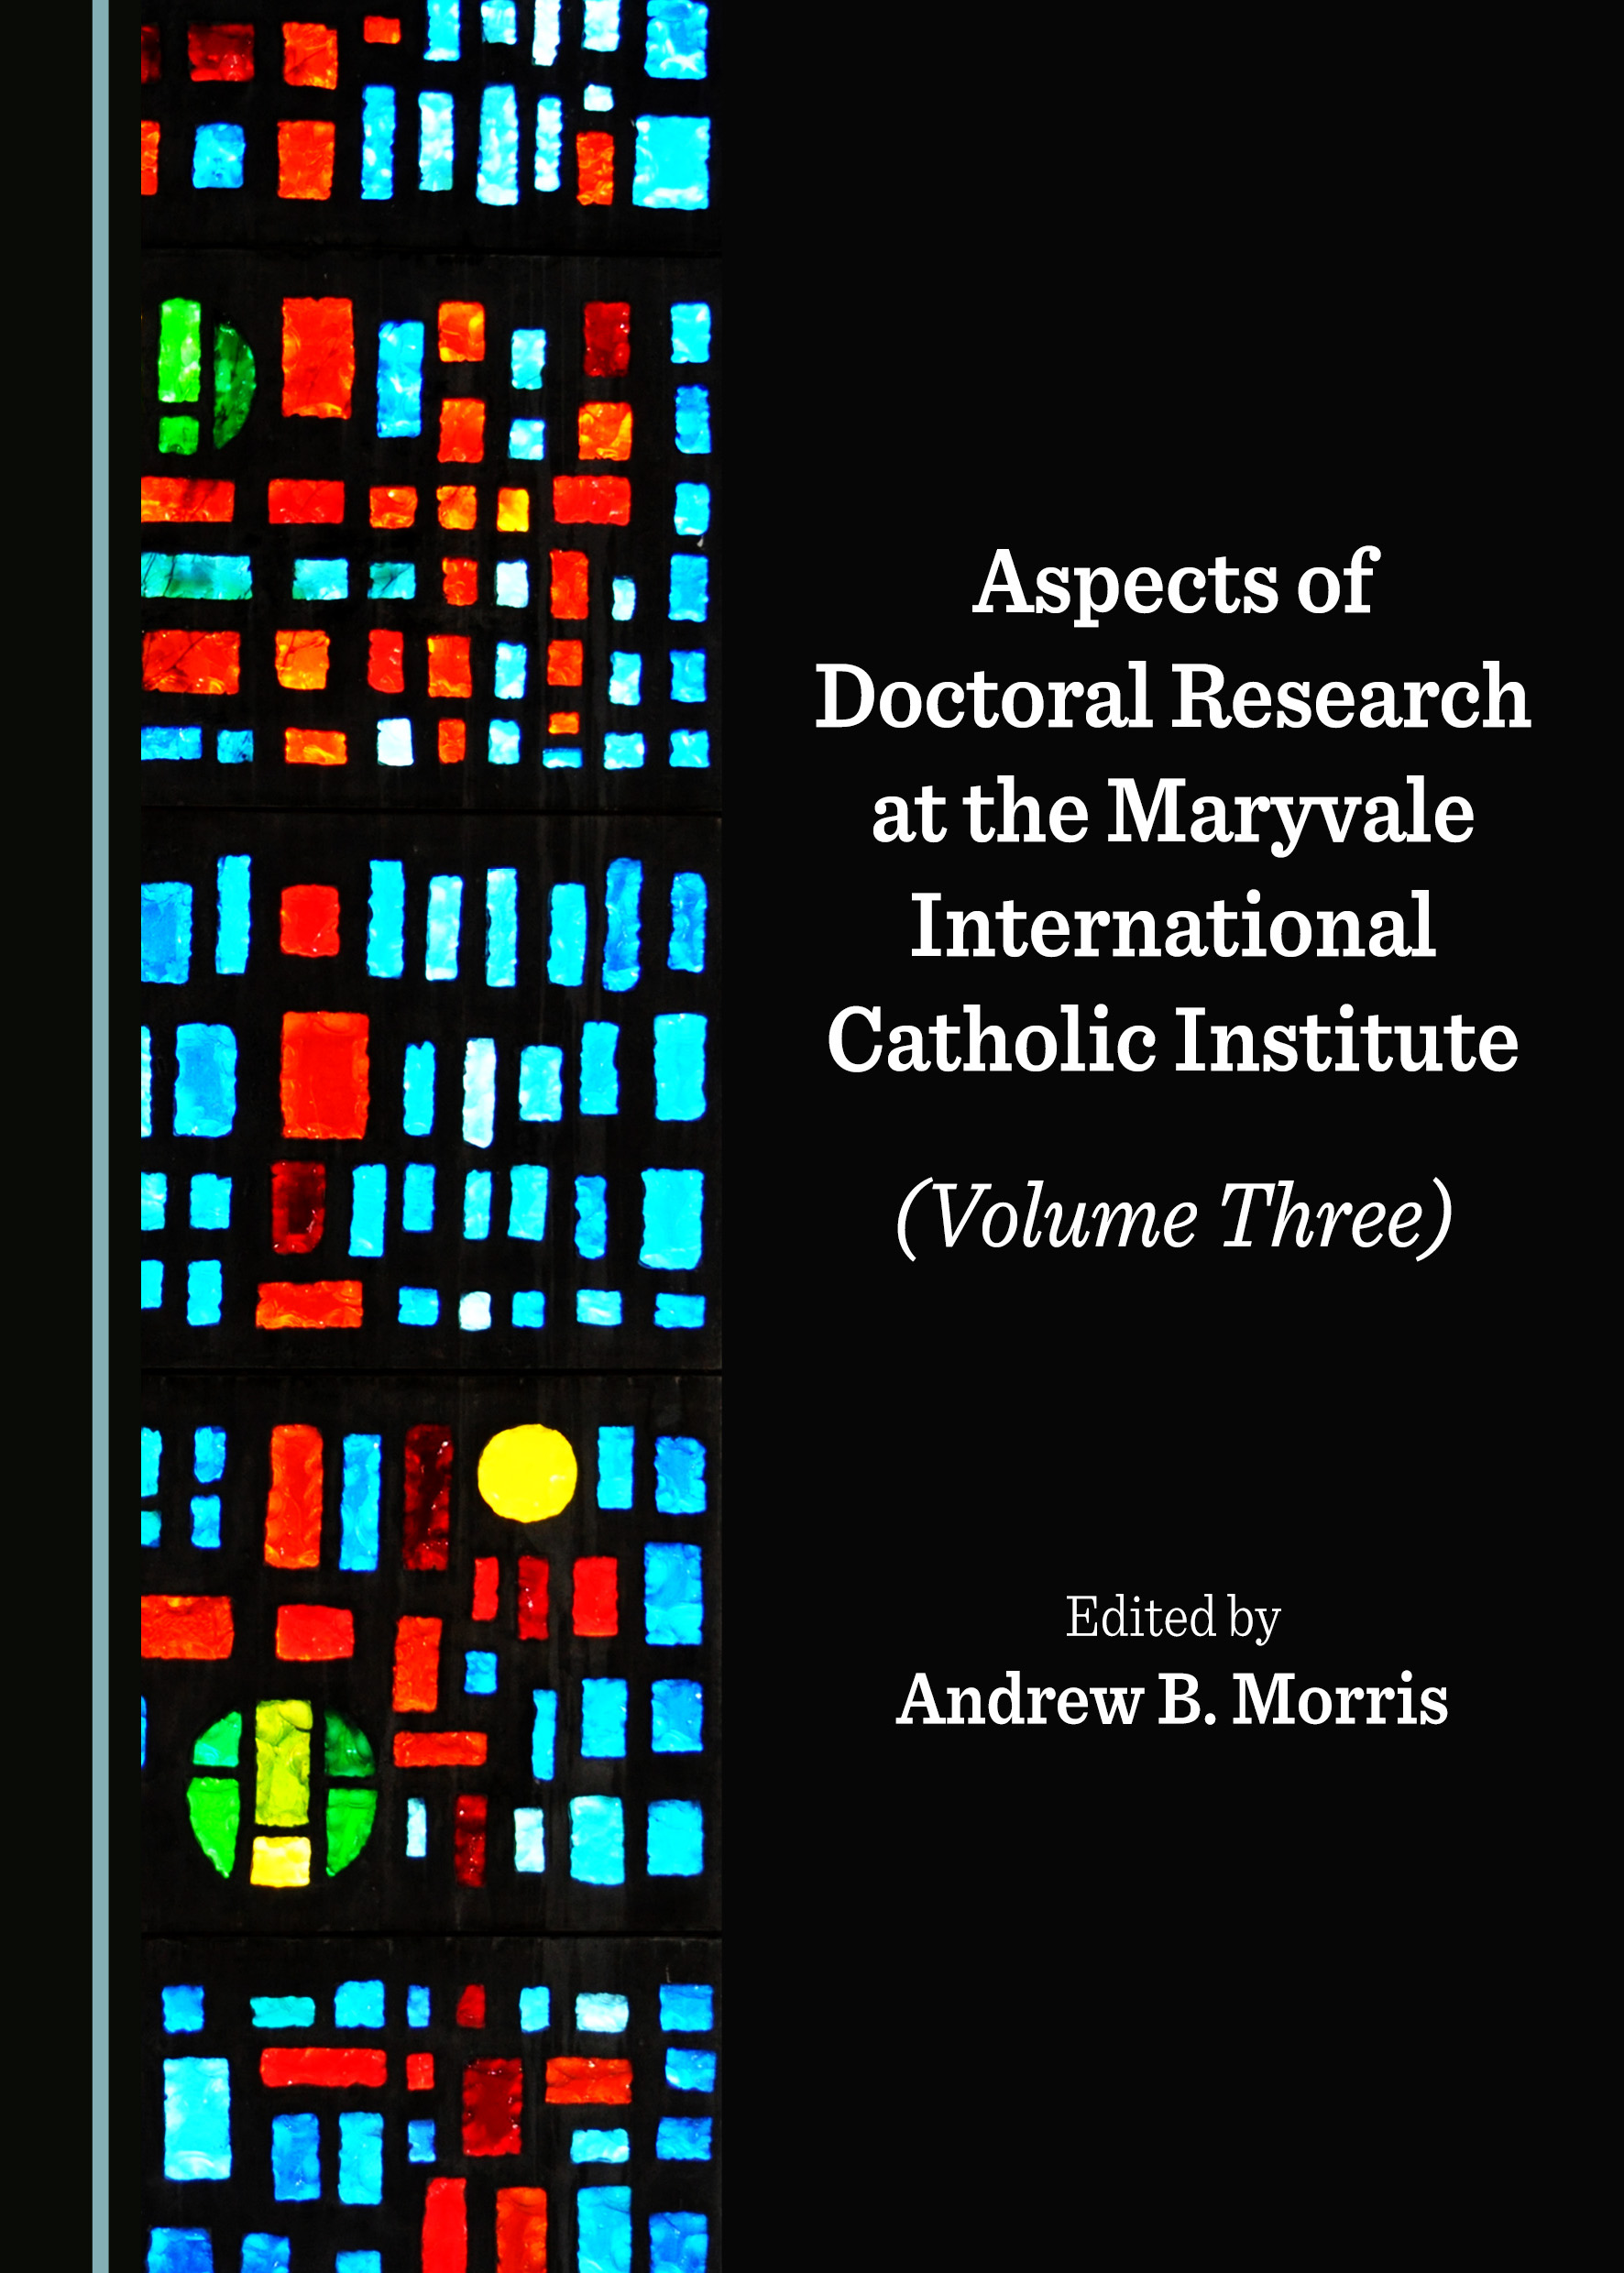 Aspects of Doctoral Research at the Maryvale International Catholic Institute (Volume Three)